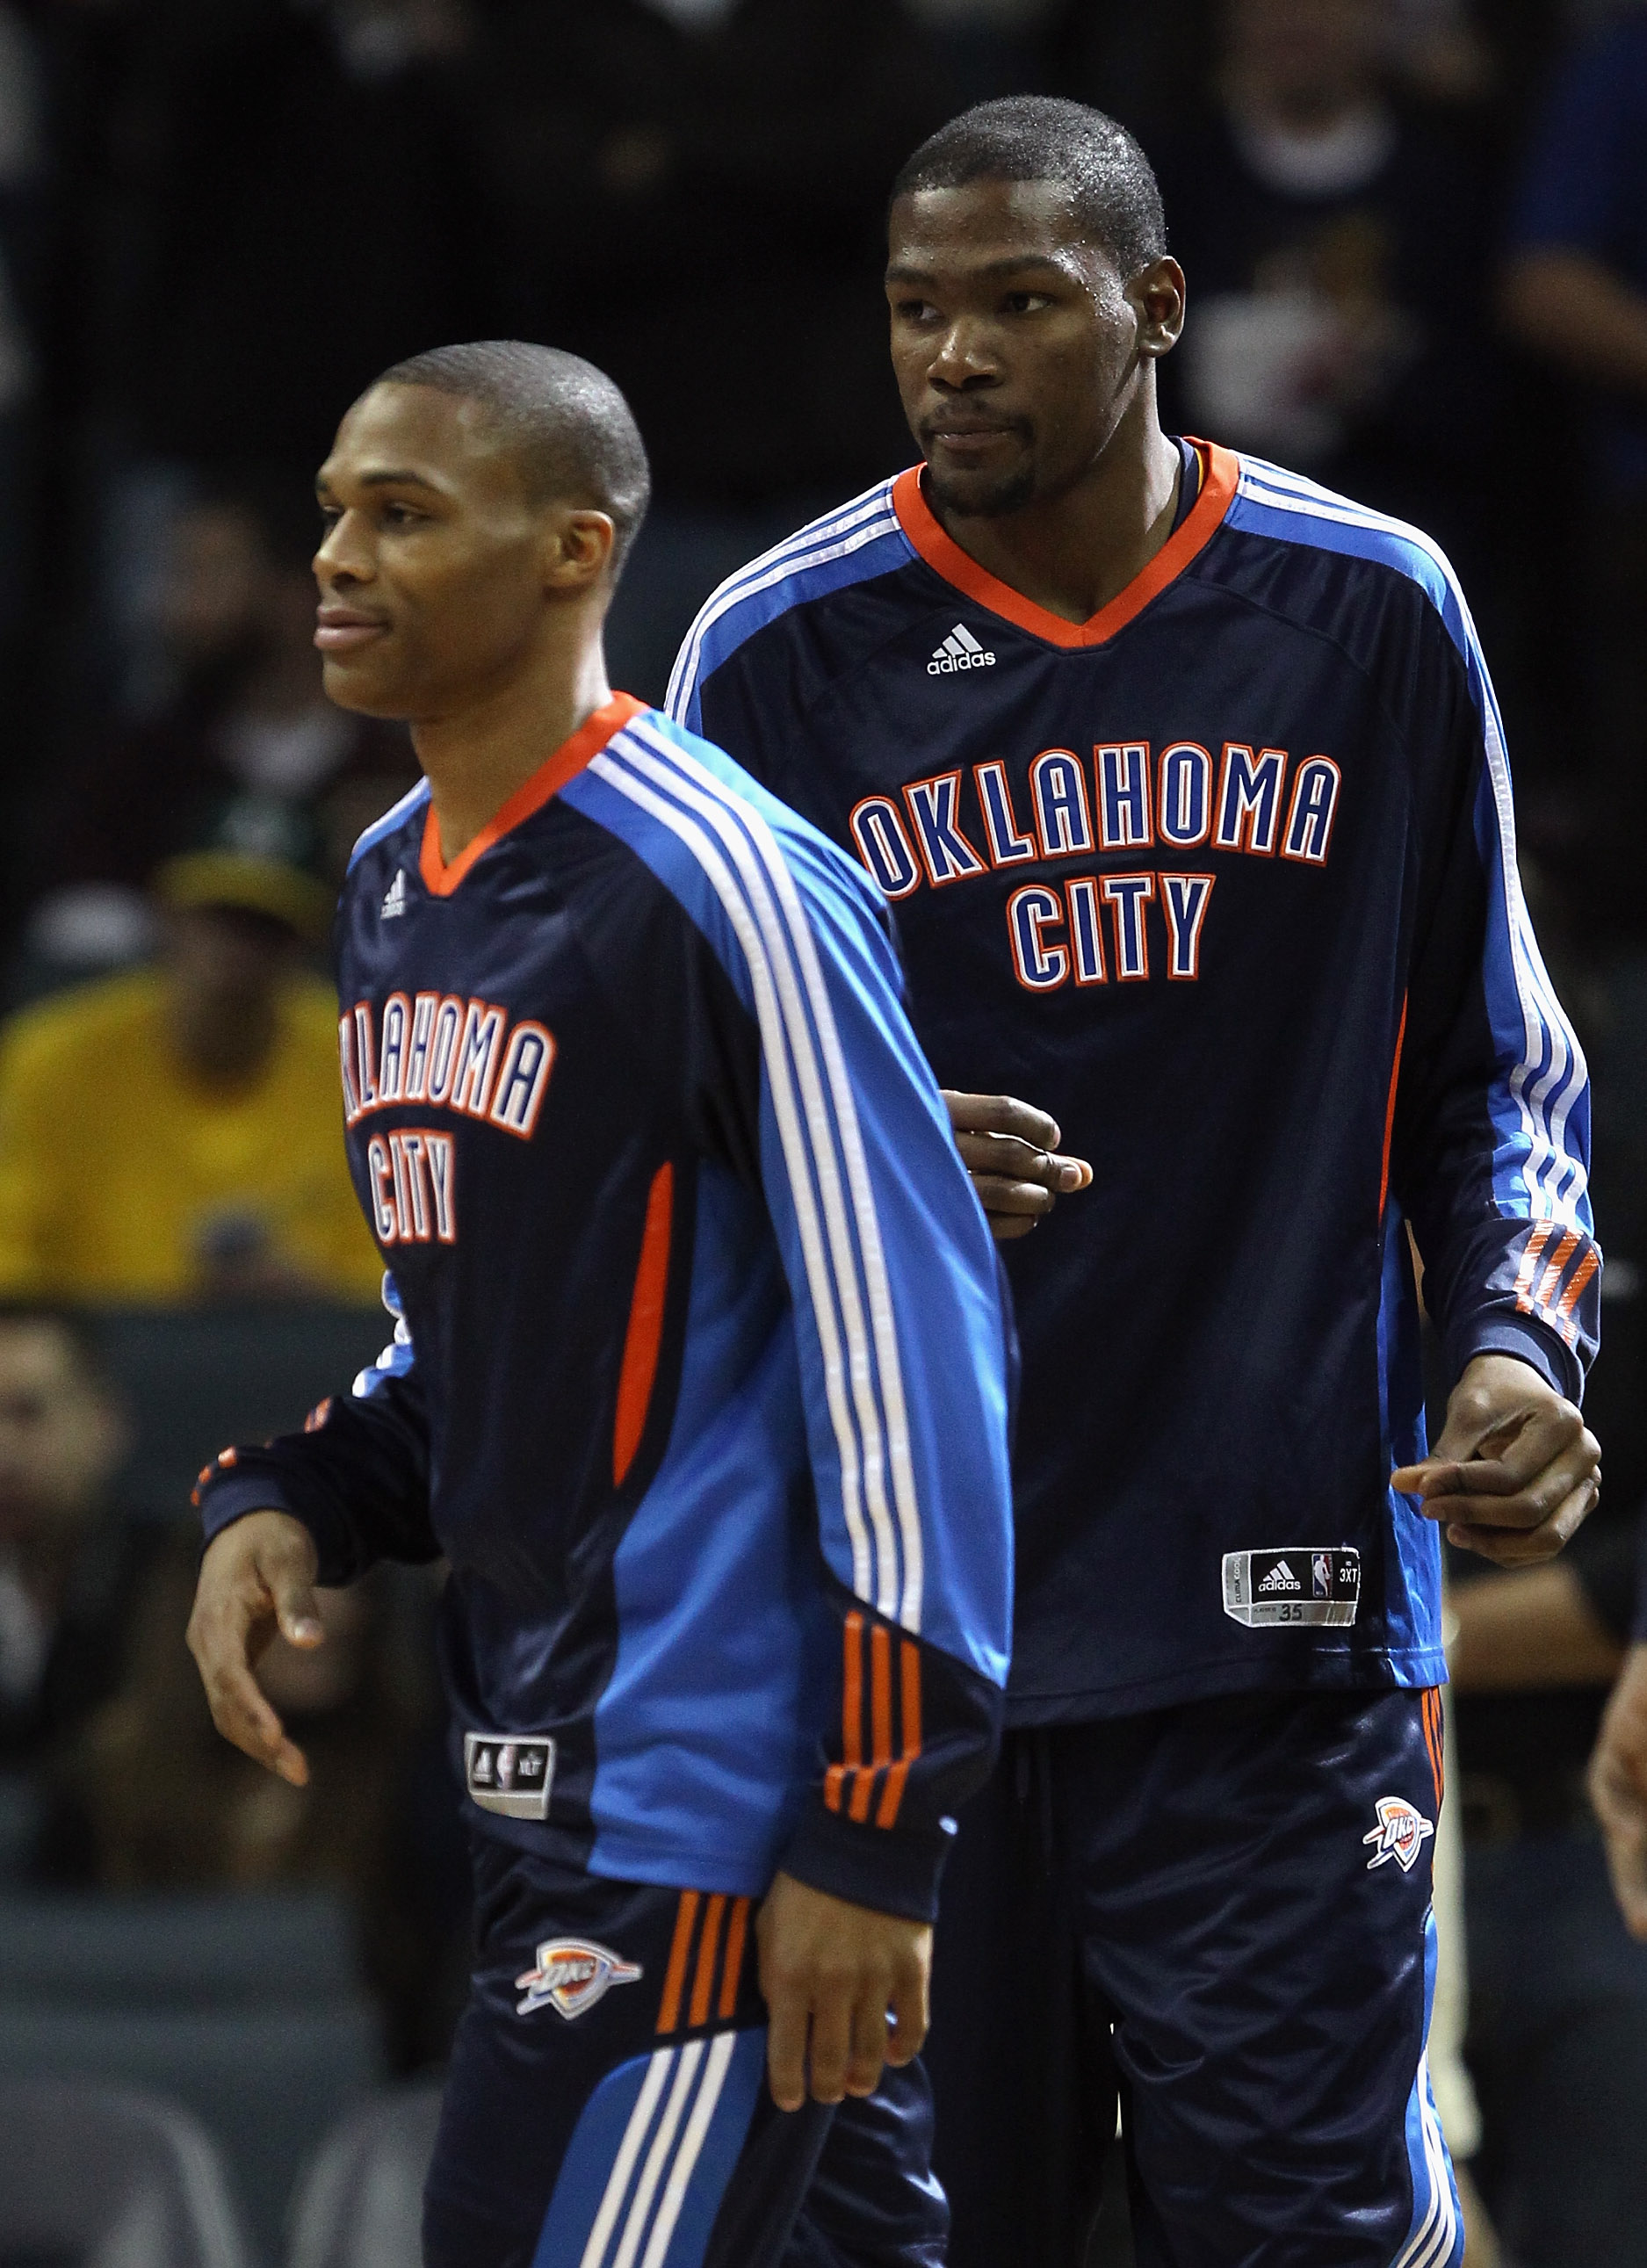 CHARLOTTE, NC - DECEMBER 21:  Teammates Kevin Durant #35 and Russell Westbrook #0 of the Oklahoma Thunder warmup before the start of their game against the Charlotte Bobcats at Time Warner Cable Arena on December 21, 2010 in Charlotte, North Carolina. NOT